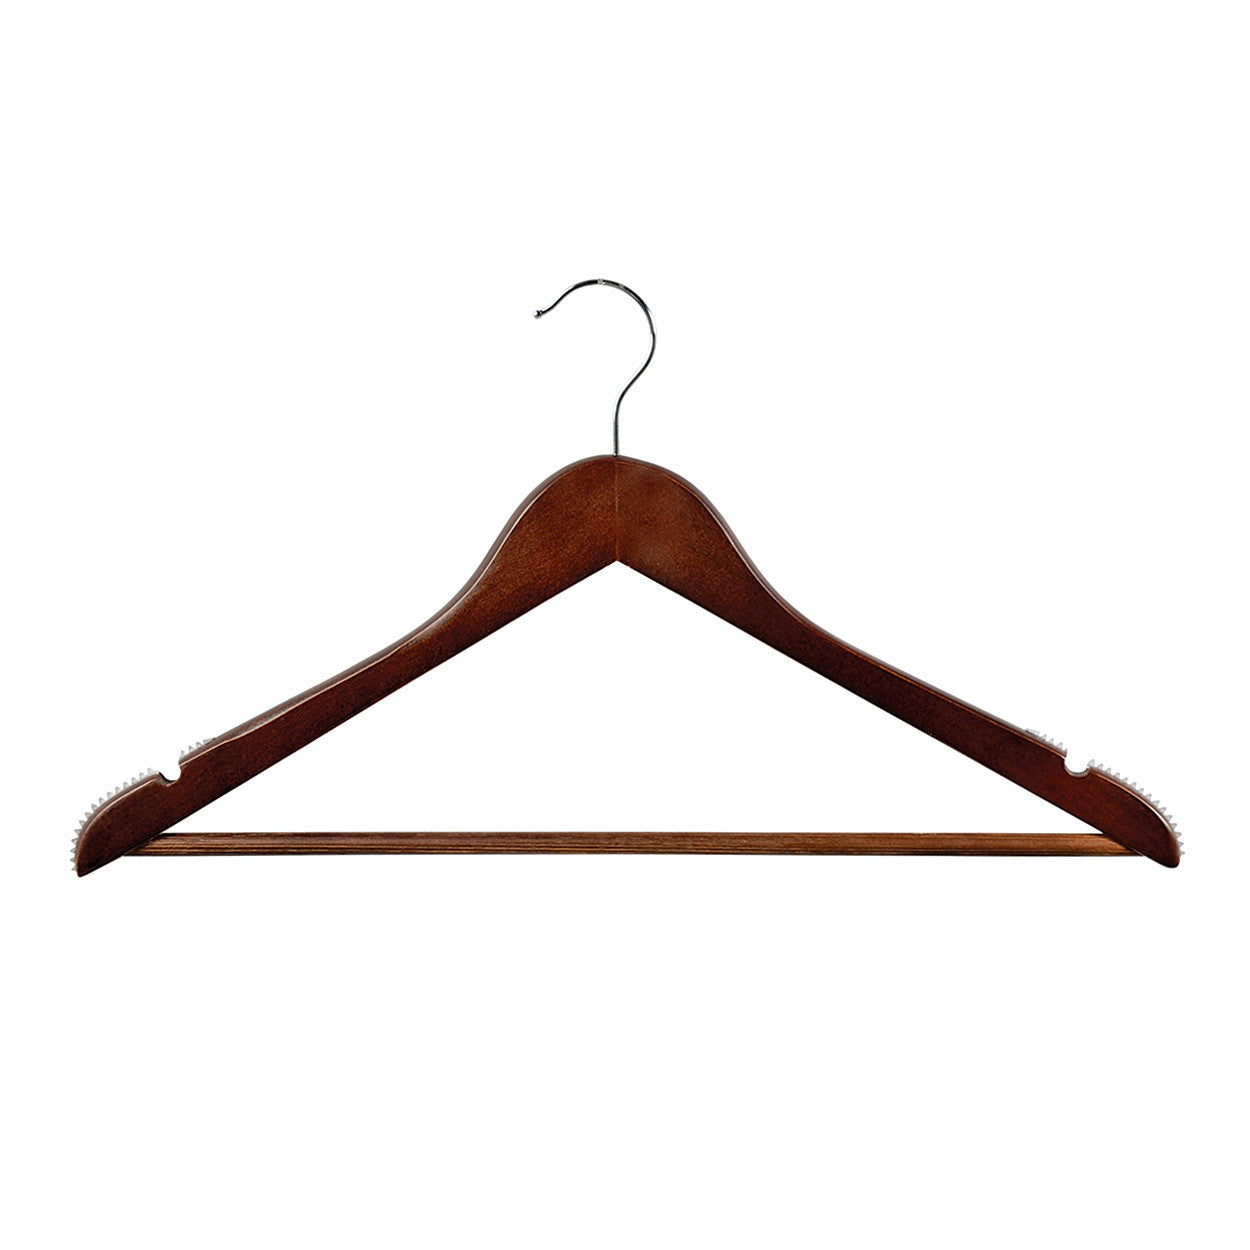 Wenge Top Timber Hanger With Ribs Rail & Notches 440 W X 14Mm Thick (Bundle of 10)